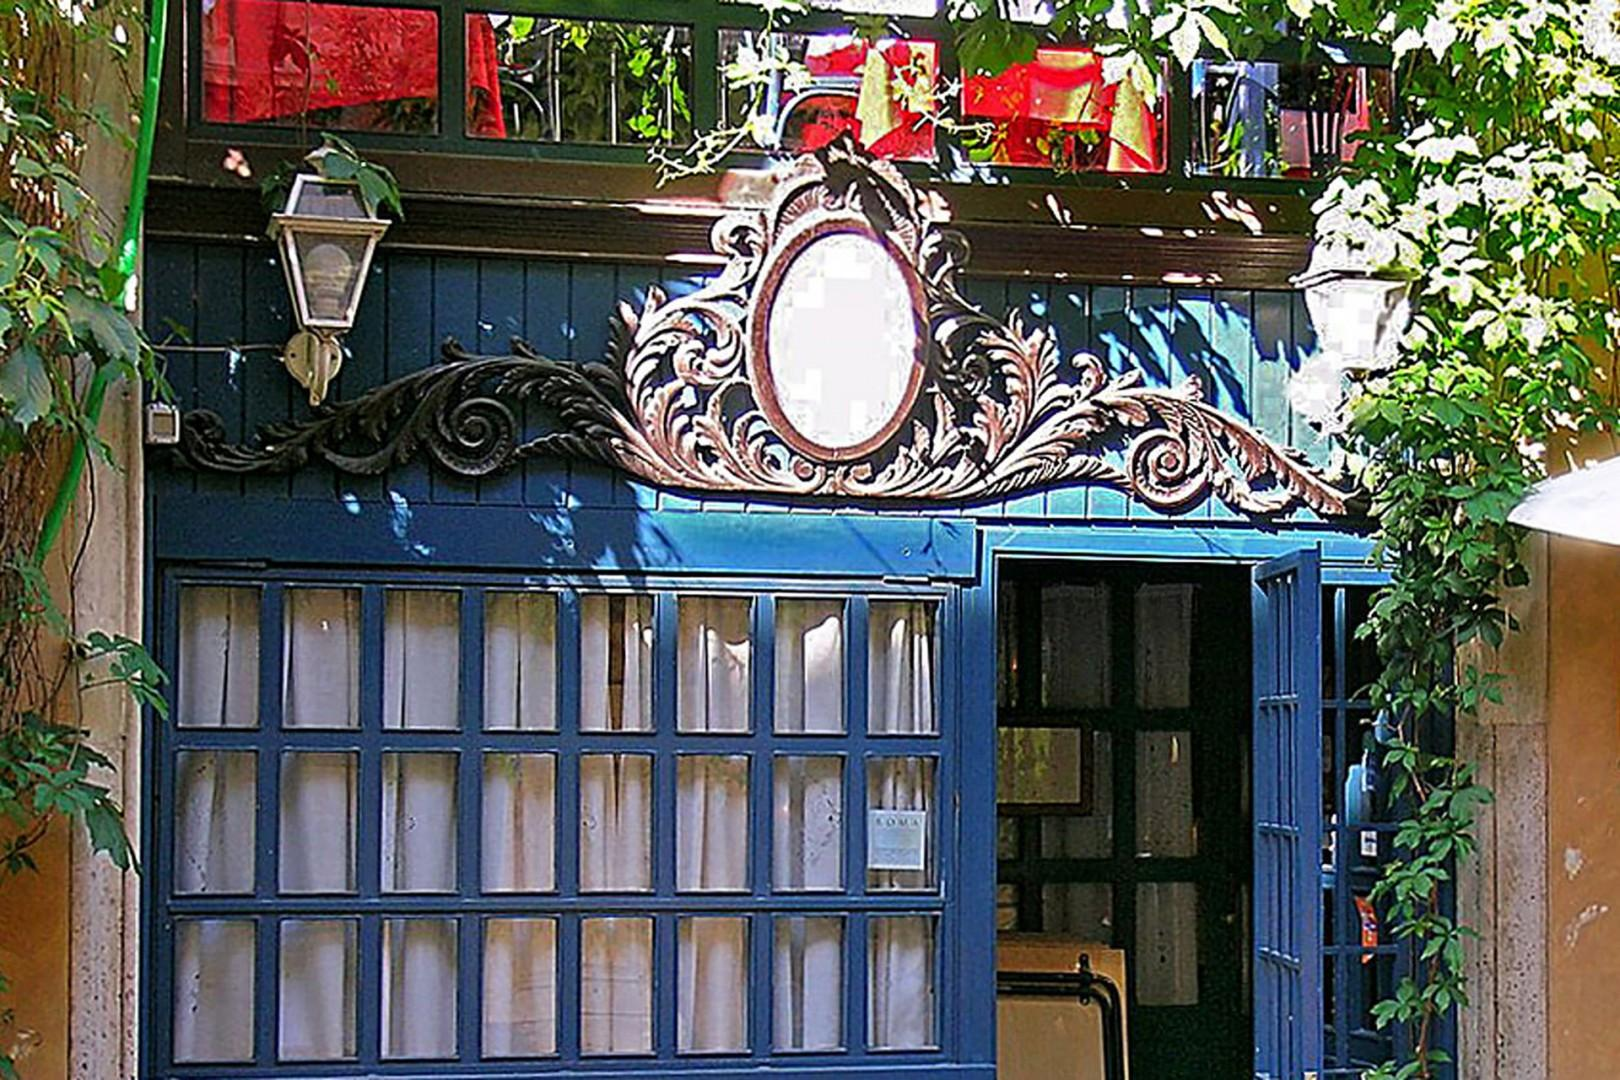 Dine indoors or out on Via Margutta, just a few steps away; famous for its beauty and antique shops.